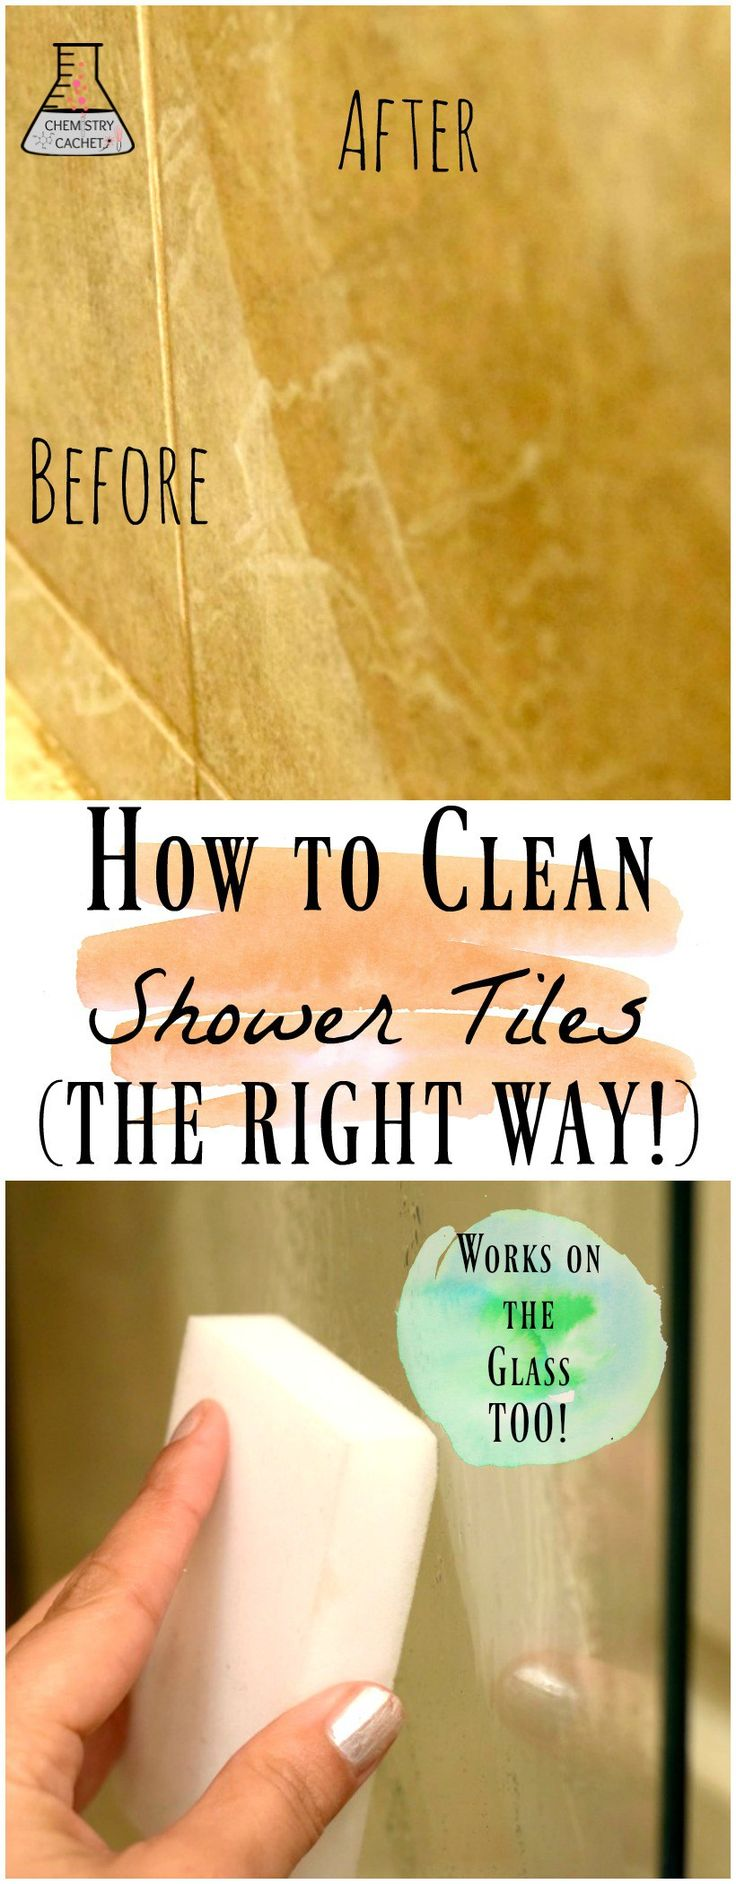 How to Clean Shower Tiles the RIGHT and cheap way! Bonus It works on glass soap scum too. Get this super easy chemist tip for your shower on chemistrycachet.com